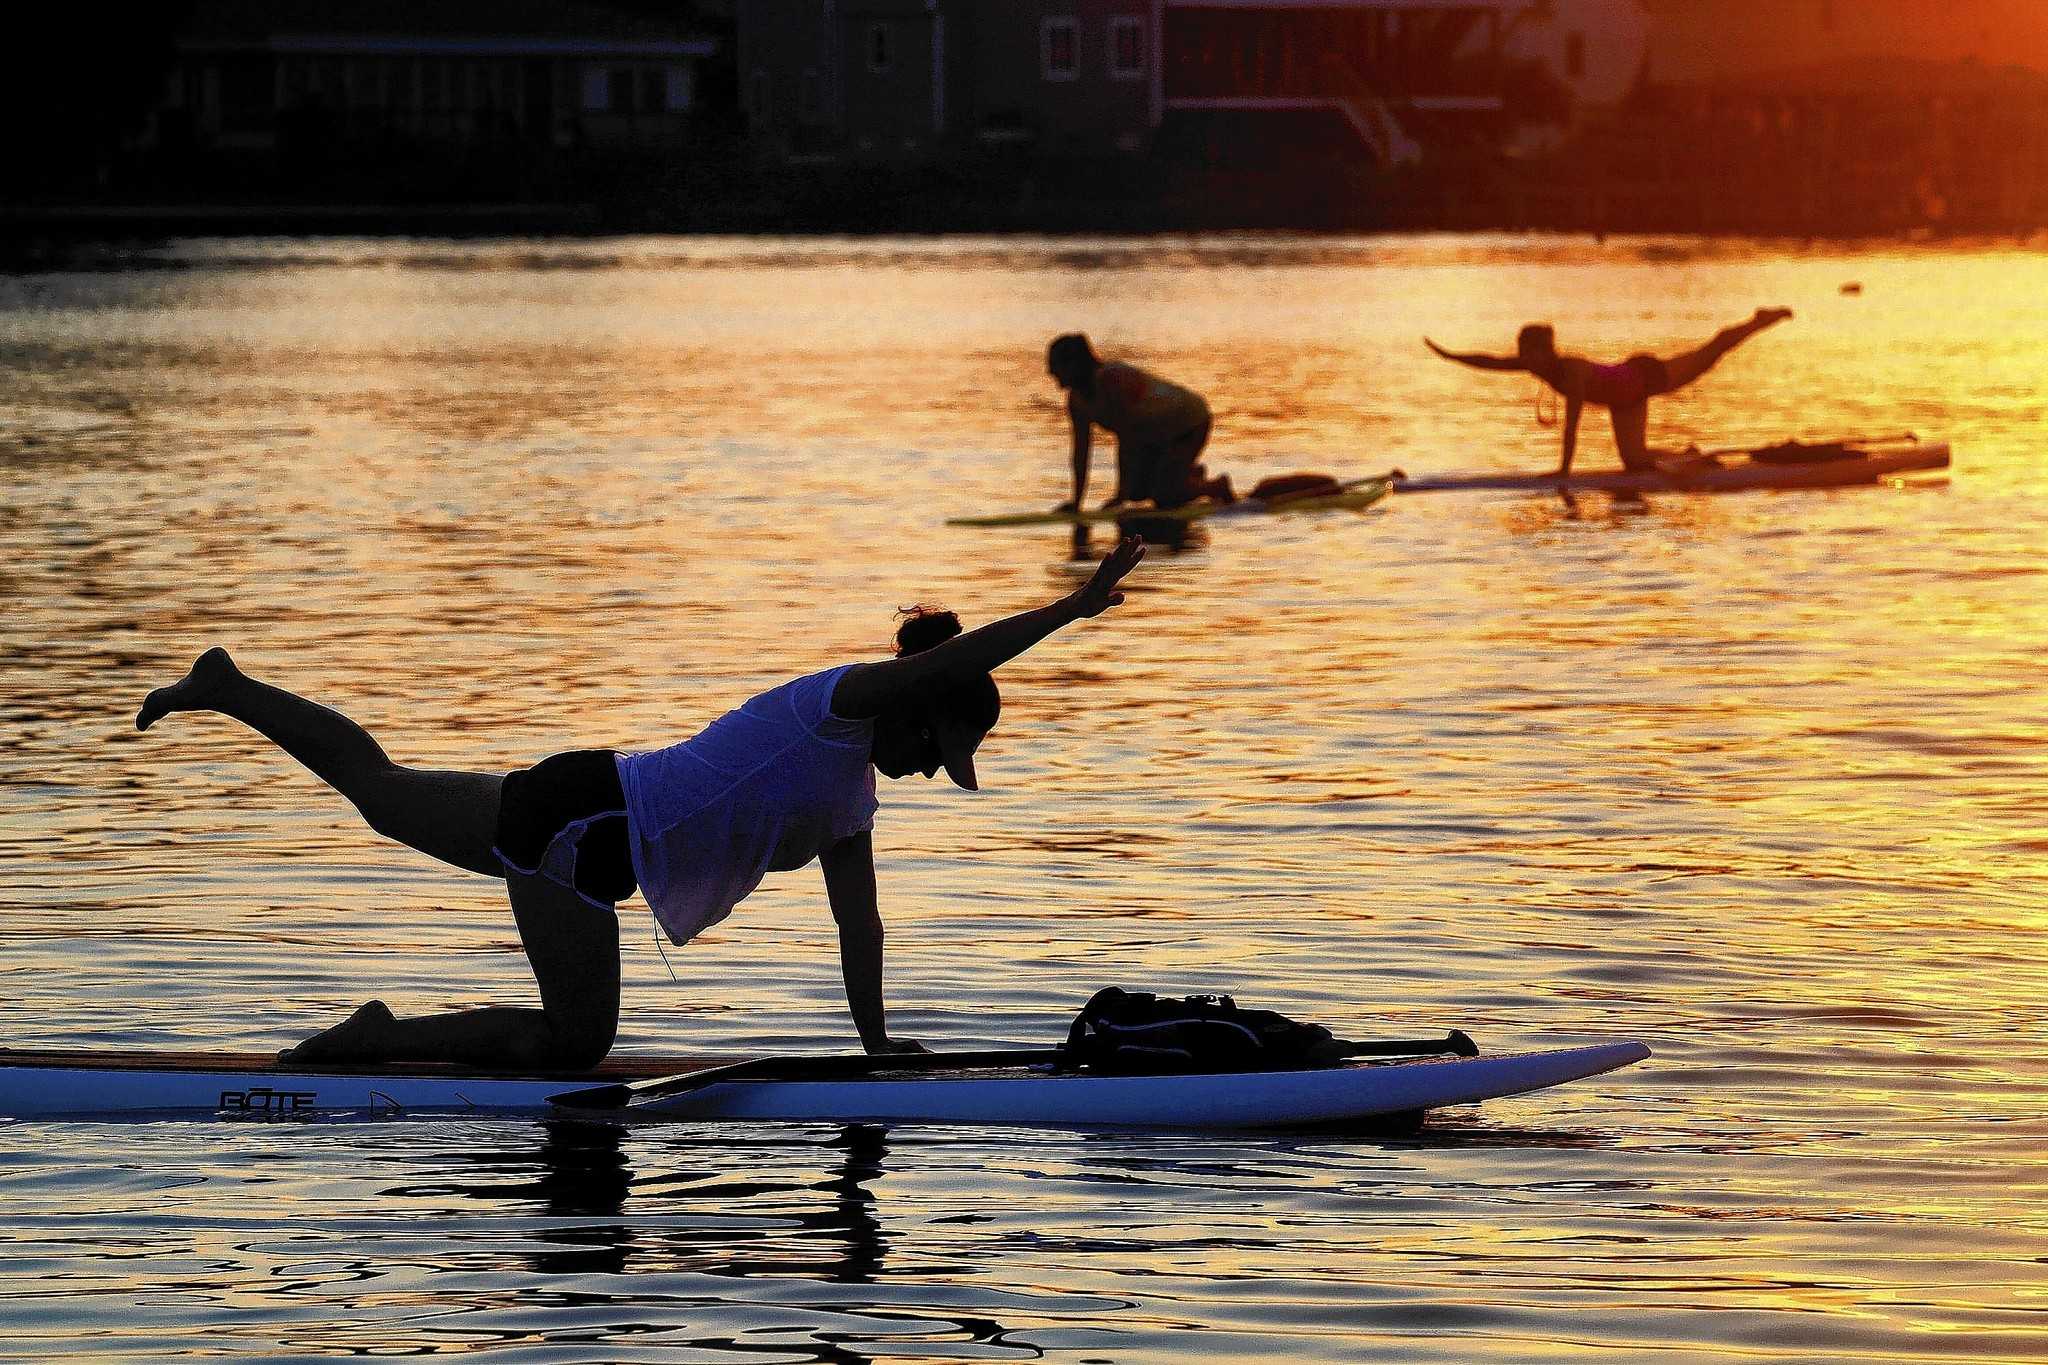 Paddle boarders exercise on their boards while in the water near Whitehouse Cove Marina in Poquoson during a recent Tuesday evening. Every Tuesday evening and Saturday morning, Paddle 757 offers a paddle board fitness class that teaches strength training exercises and basic yoga poses to...